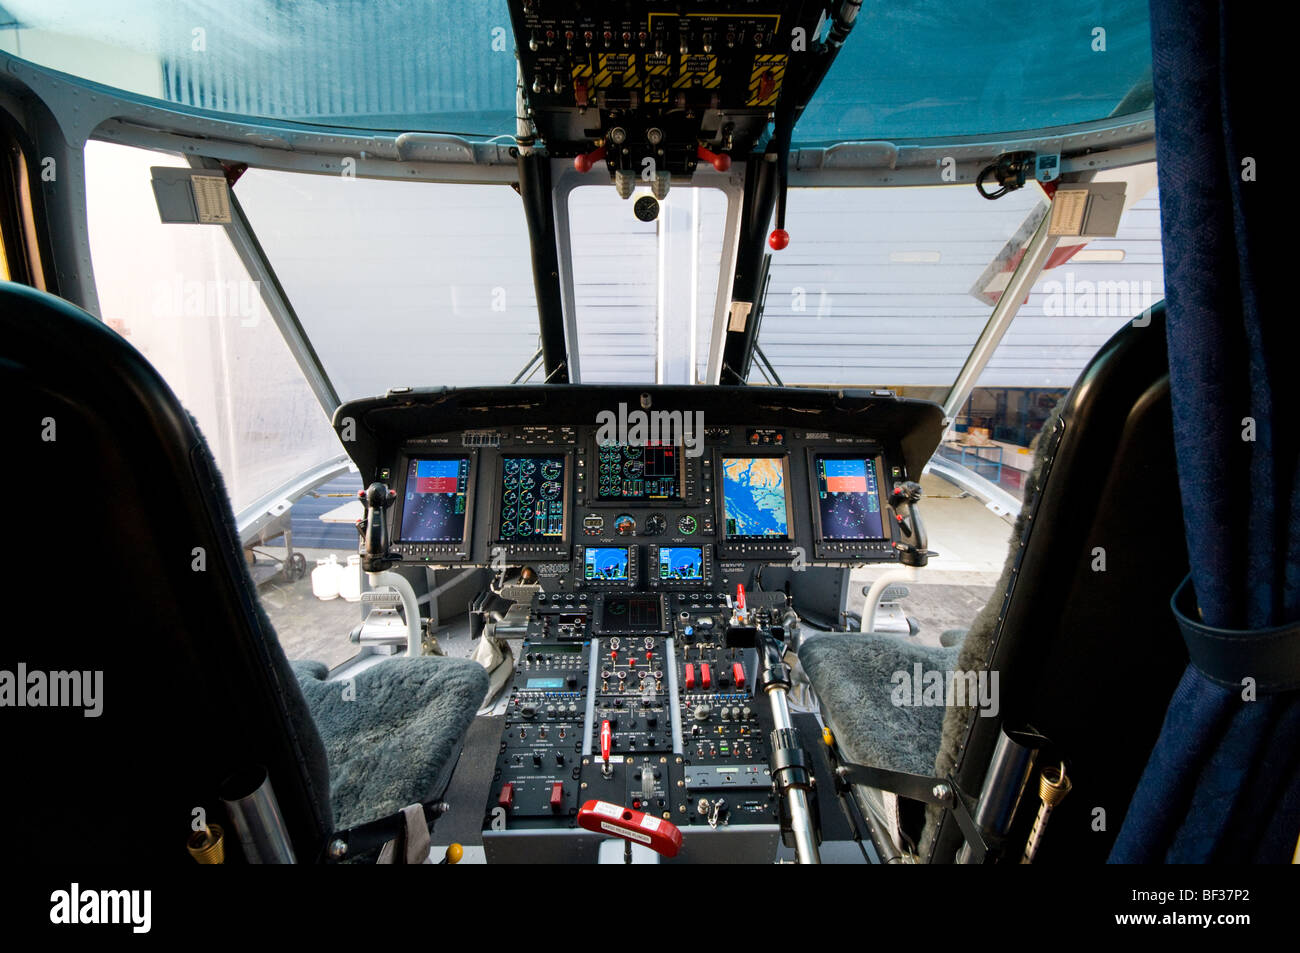 helicopter aircraft cockpit - Stock Image